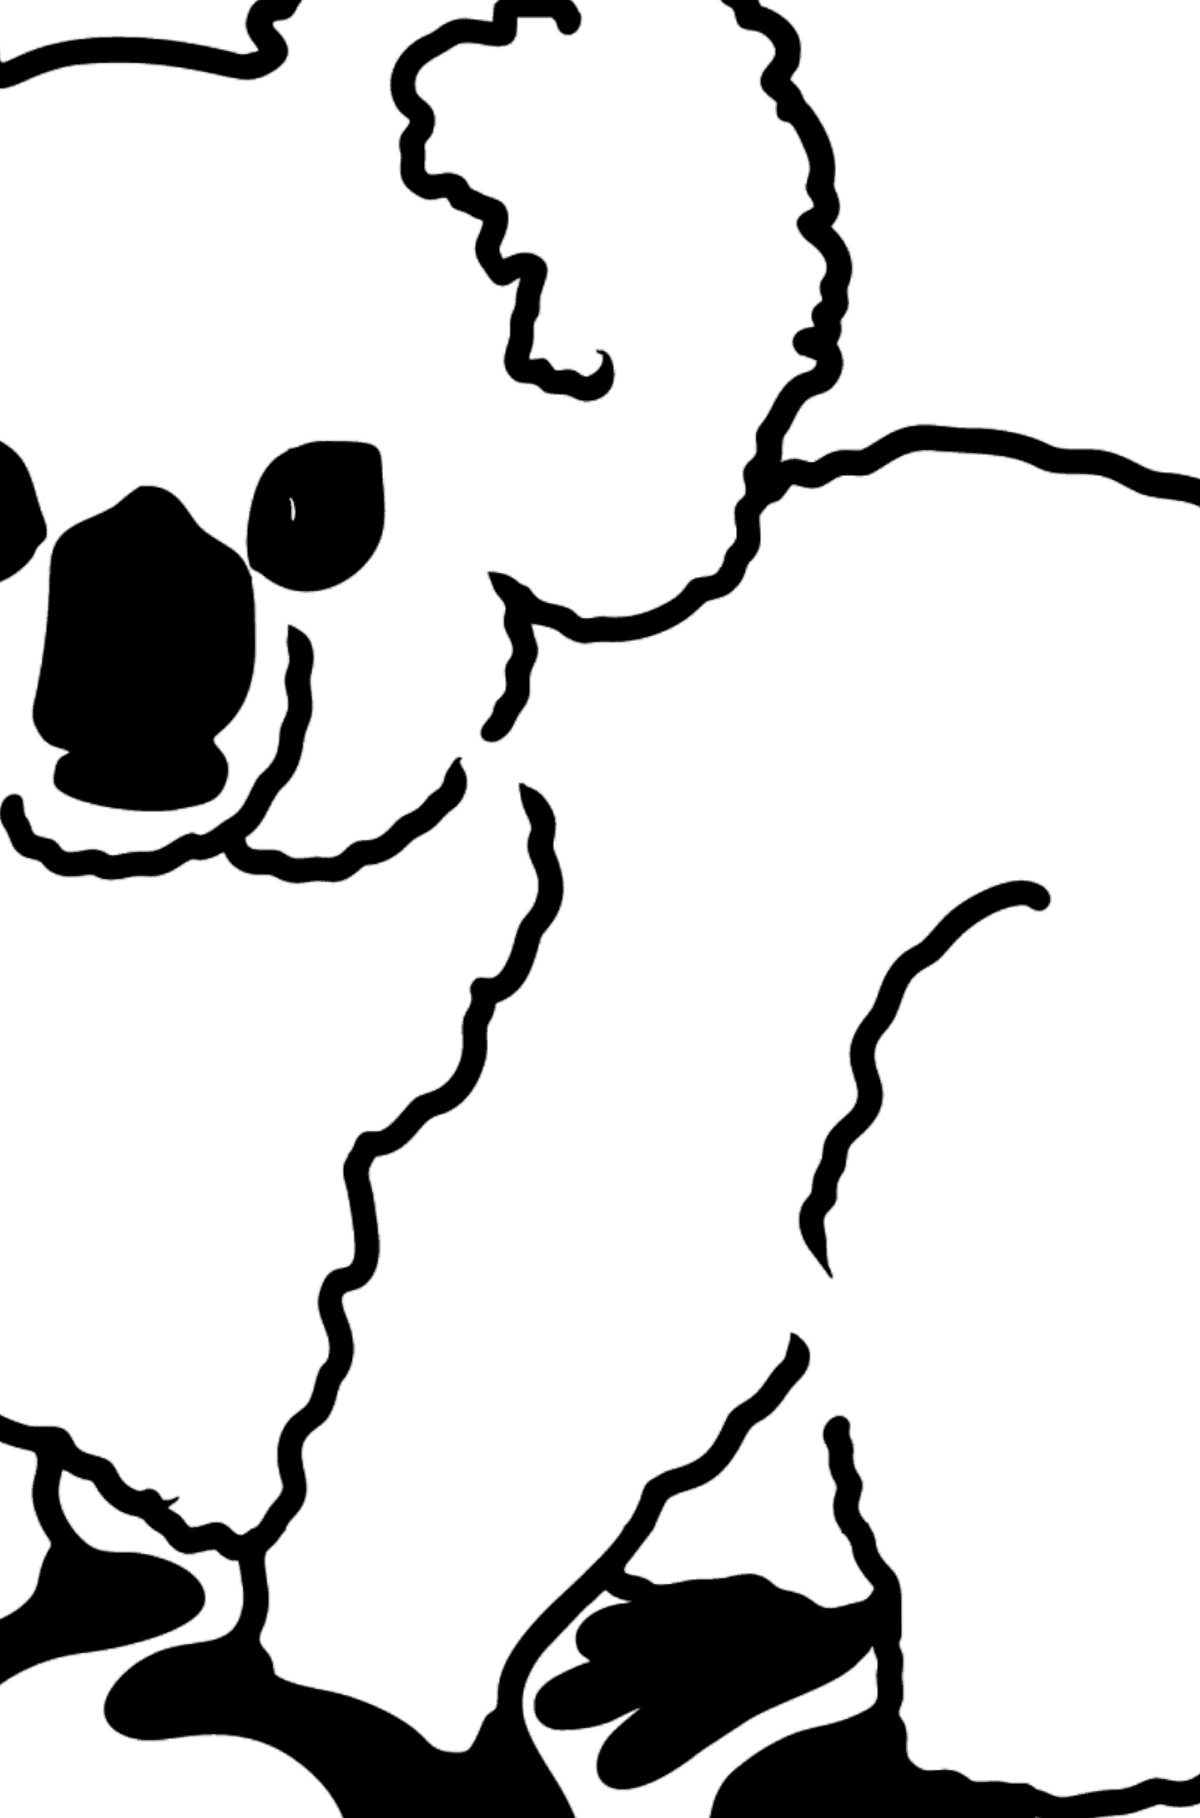 Koala coloring page - Math Coloring - Division for Kids